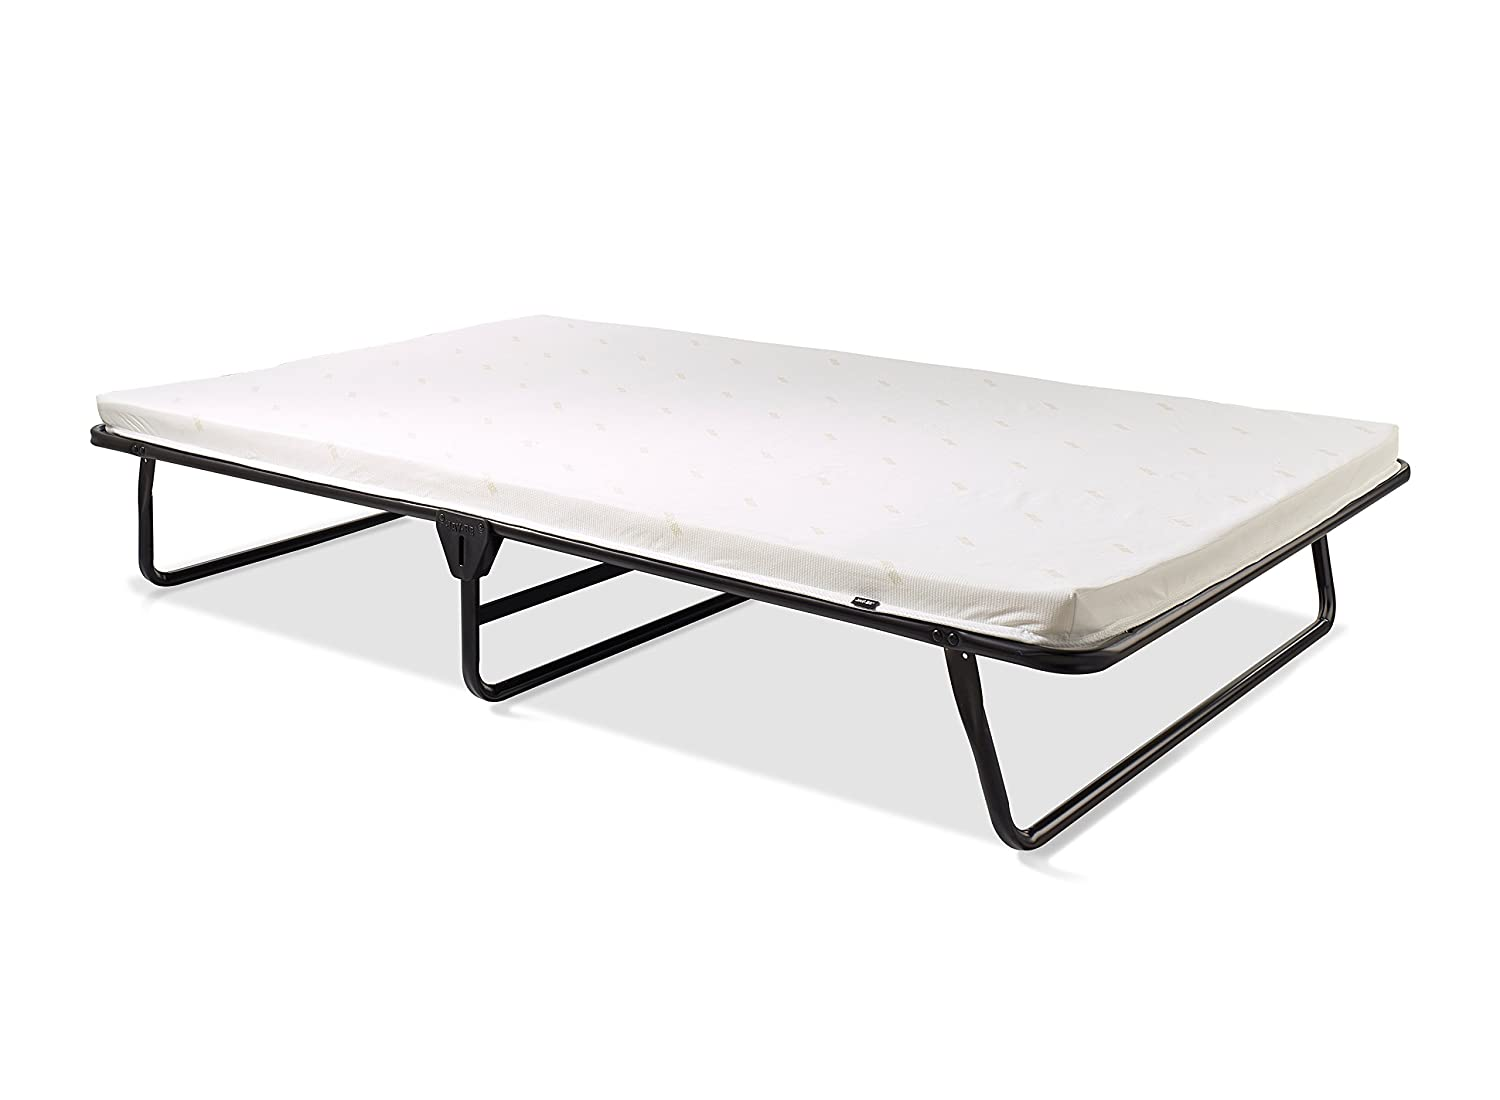 34d8806cfca Amazon.com  Jay-Be Saver Folding Bed with Airflow Mattress ...